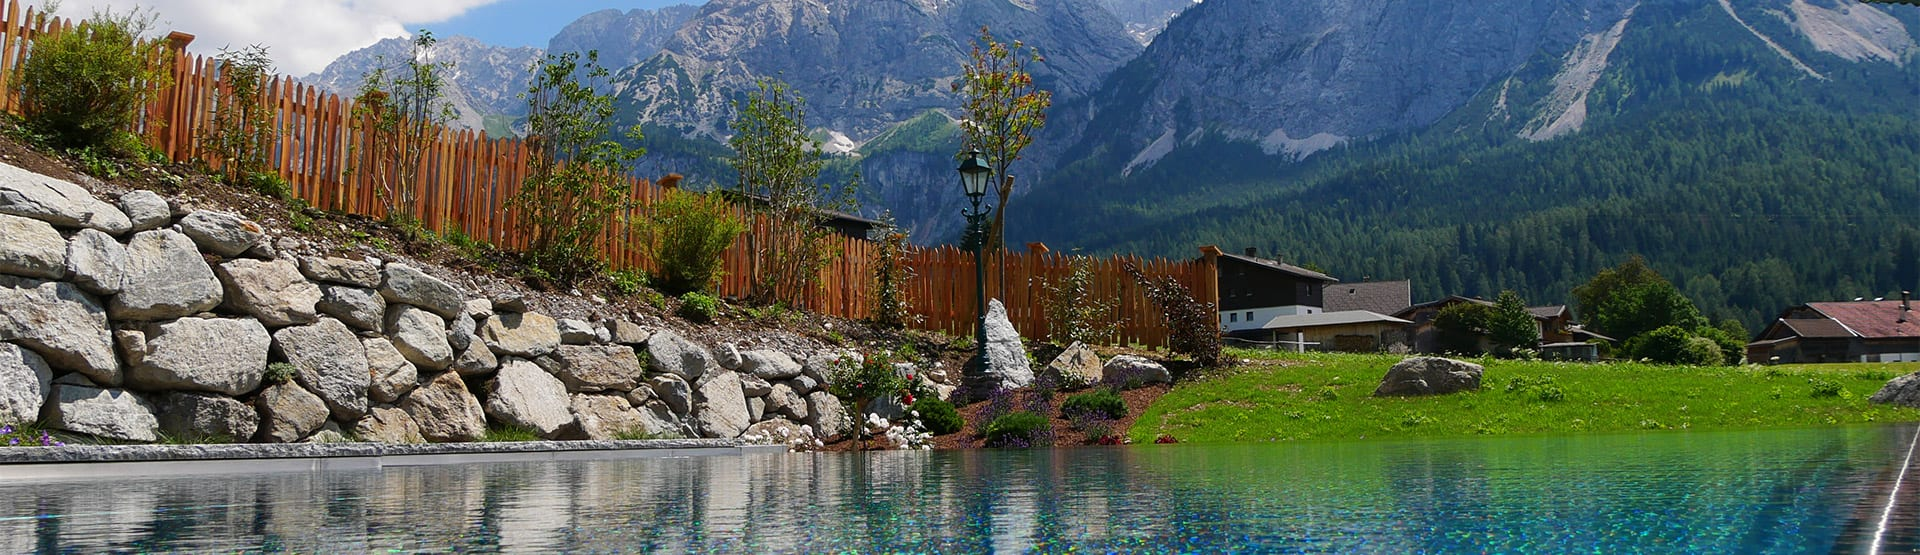 Hotel Romantik Spielman - Luxury Hotel in the Austrian Alps